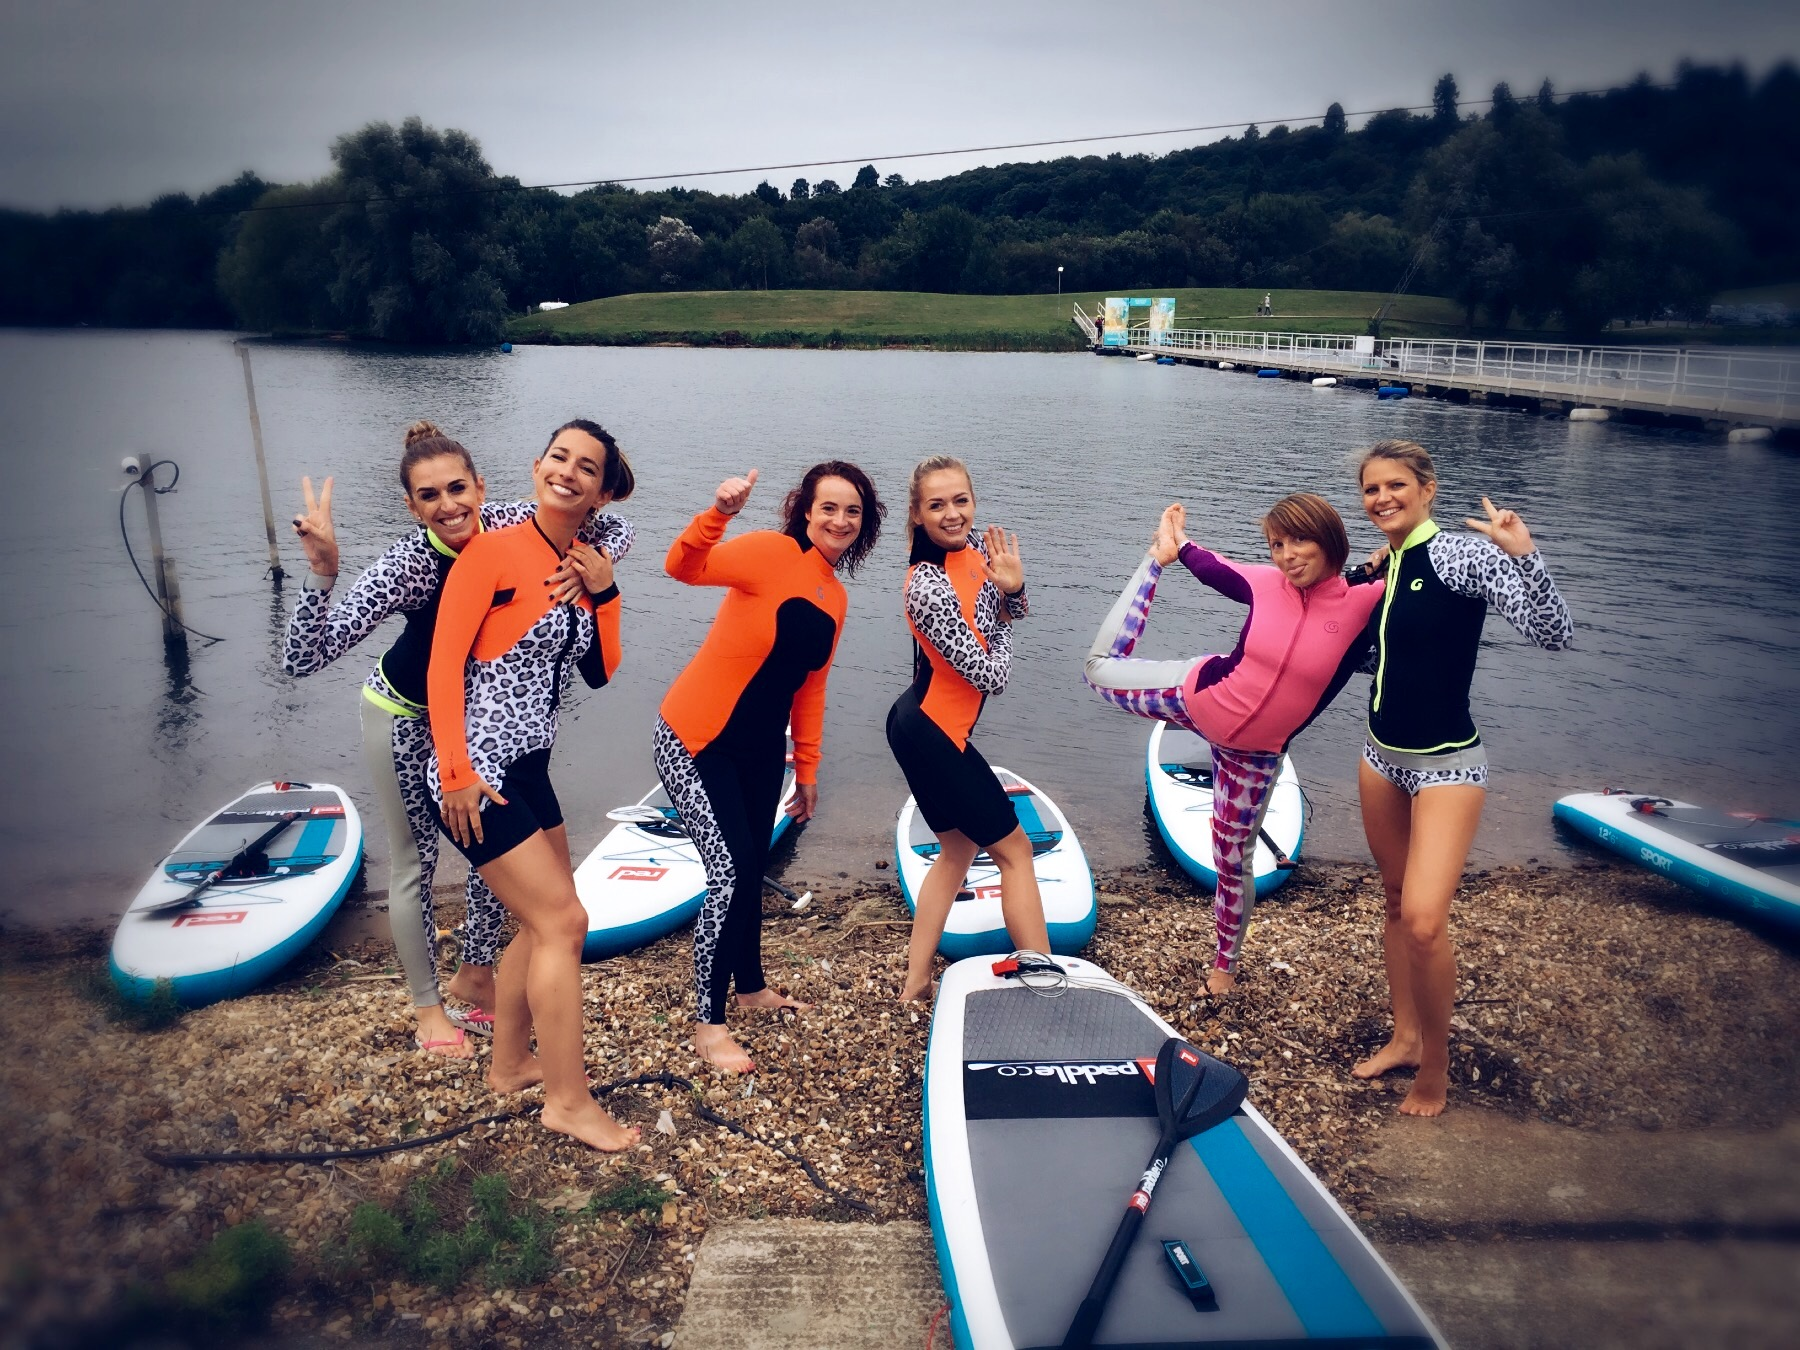 An adventurous watersports day with GlideSoul